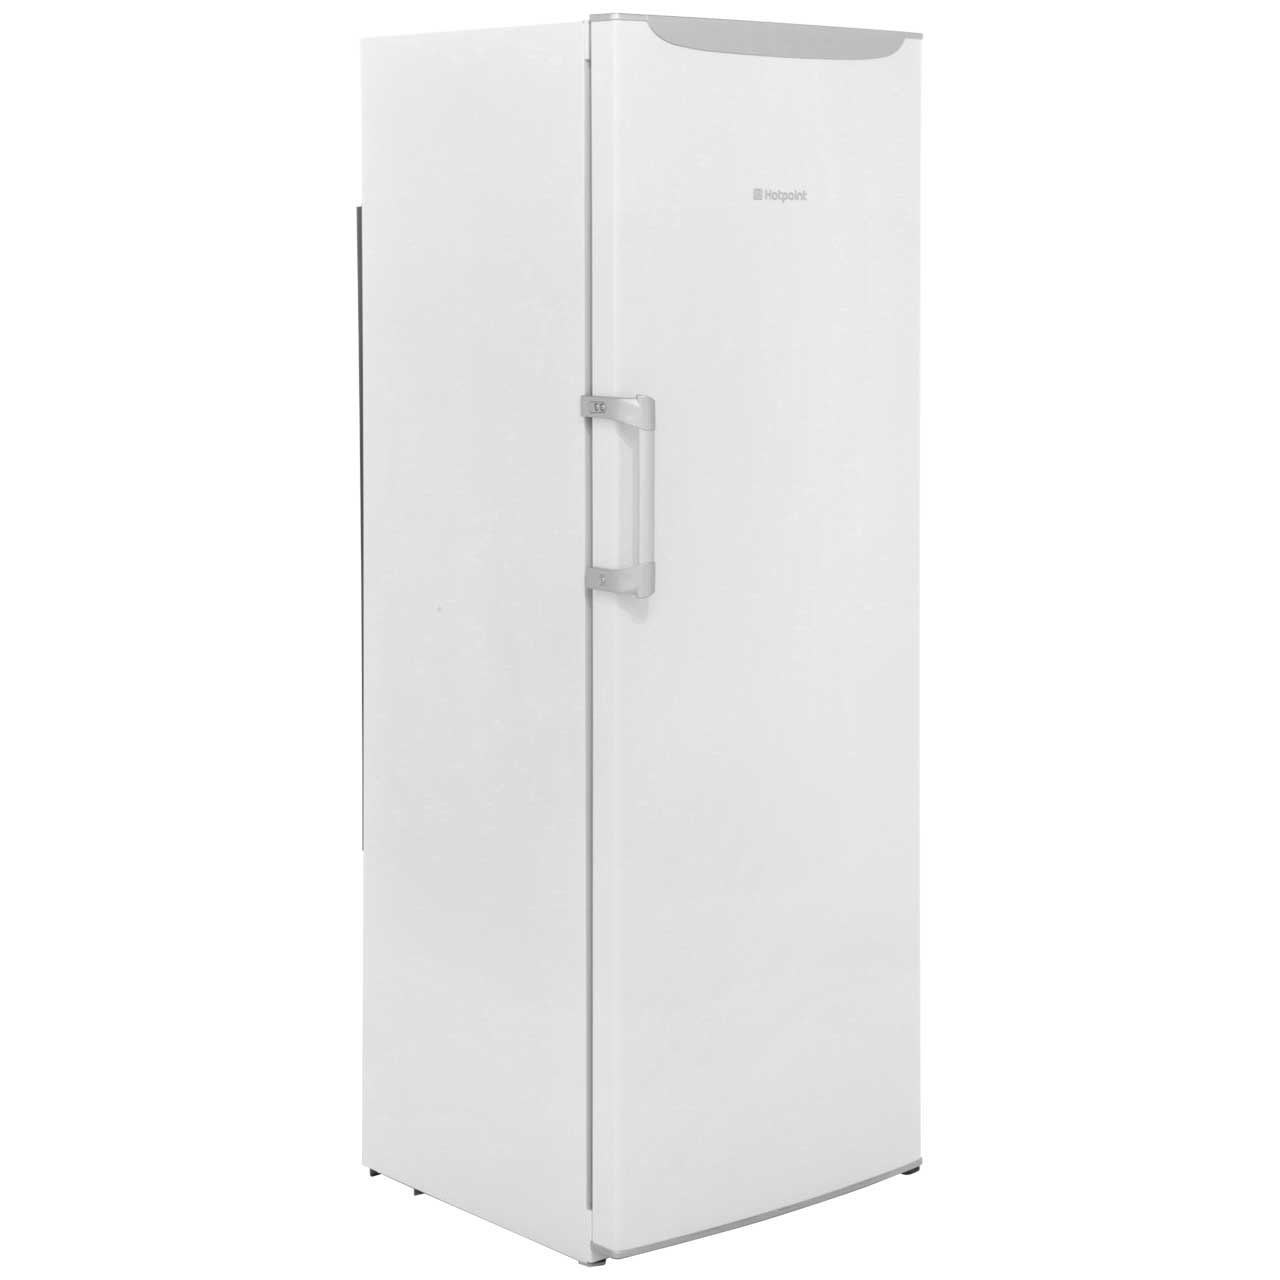 Hotpoint RLFM171P Fridge - White